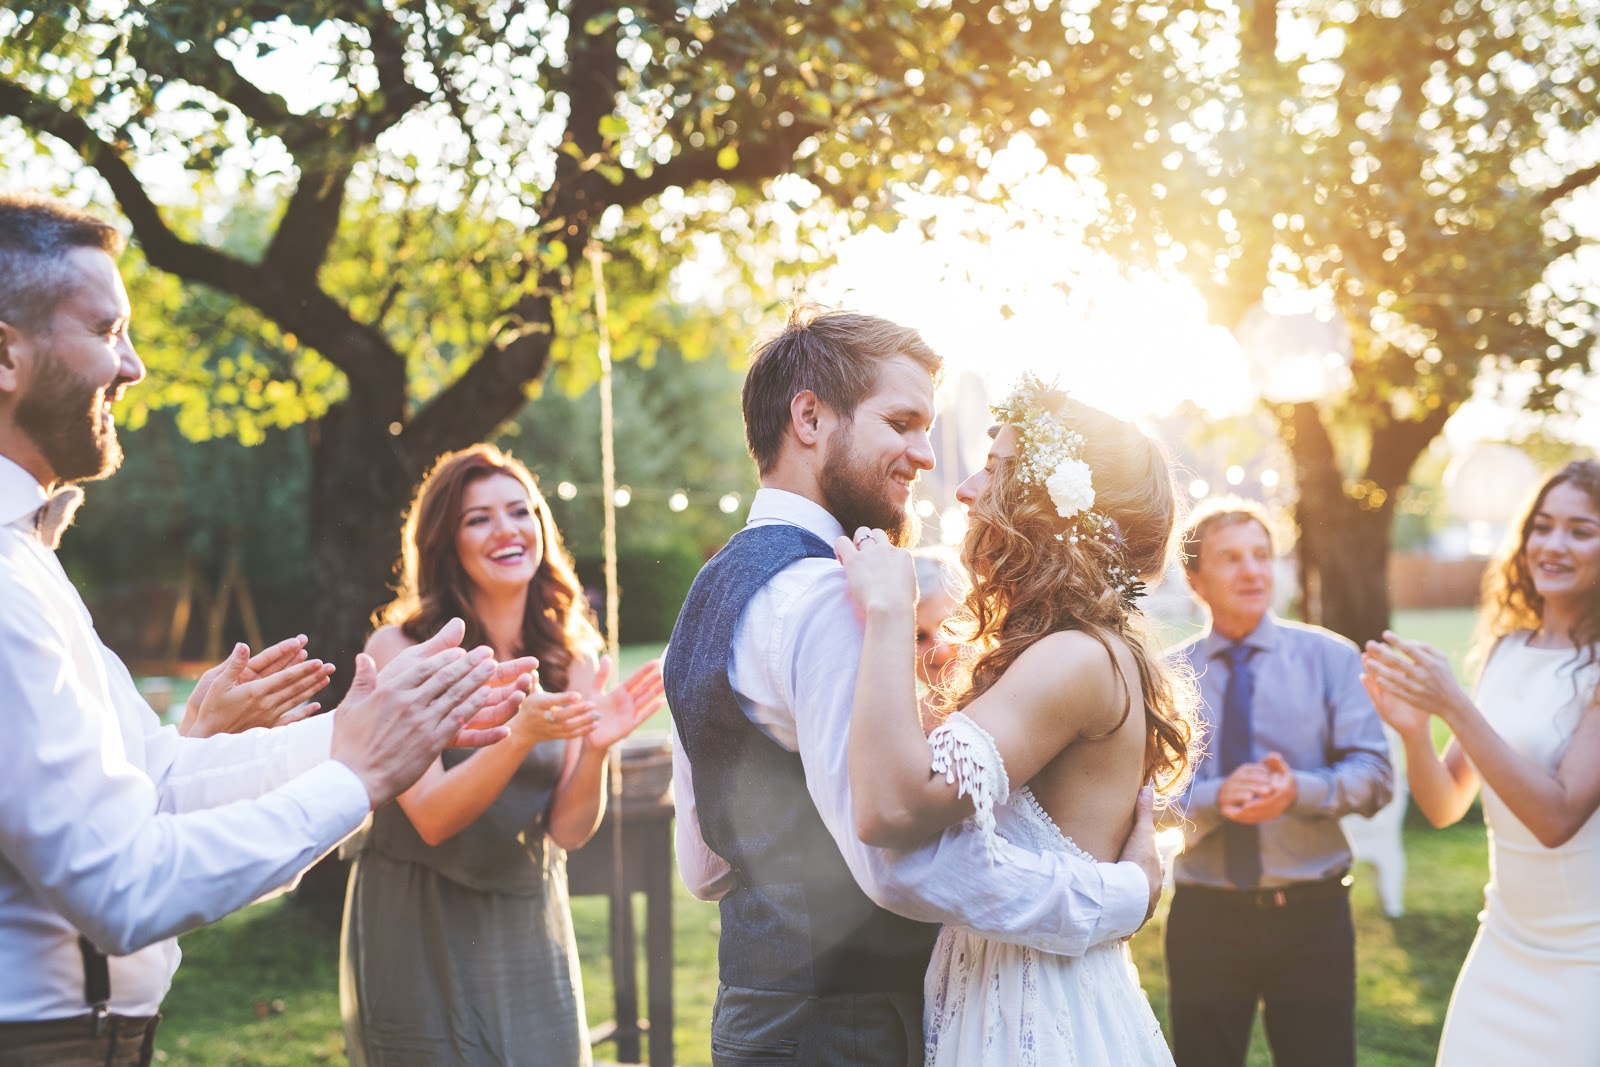 minimony: Newlywed couple dancing while surrounded by smiling guests